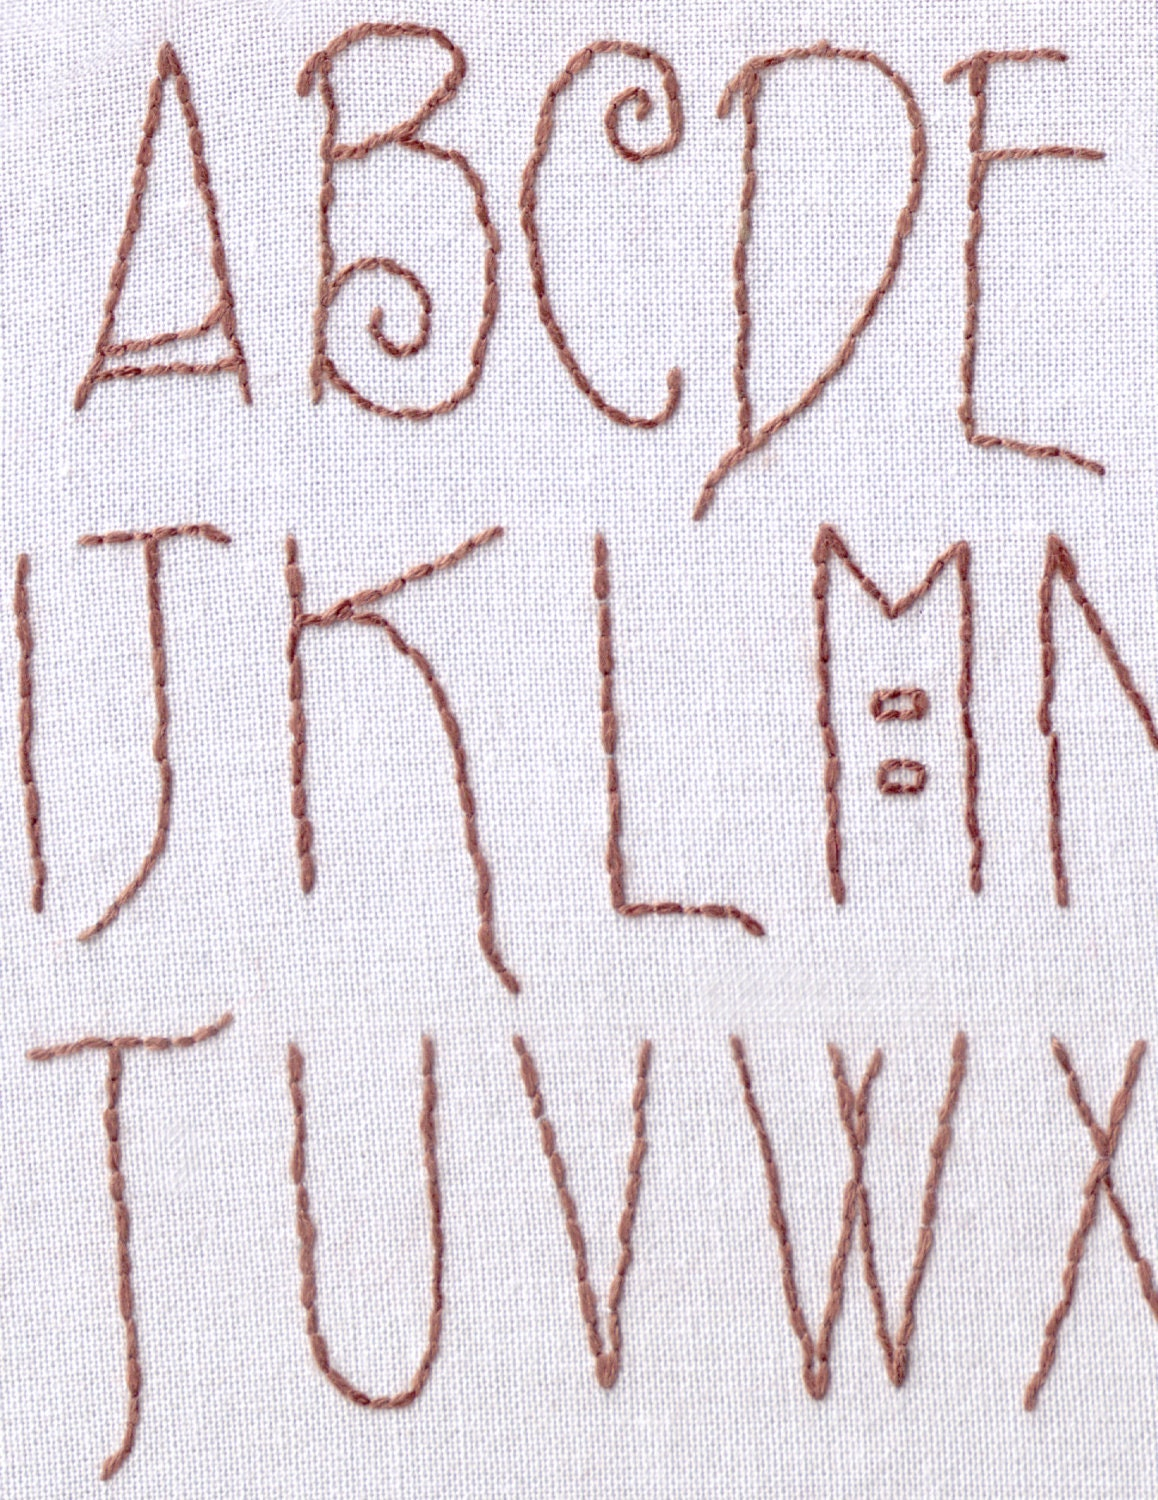 Alphabet hand embroidery pattern craftsman font letters